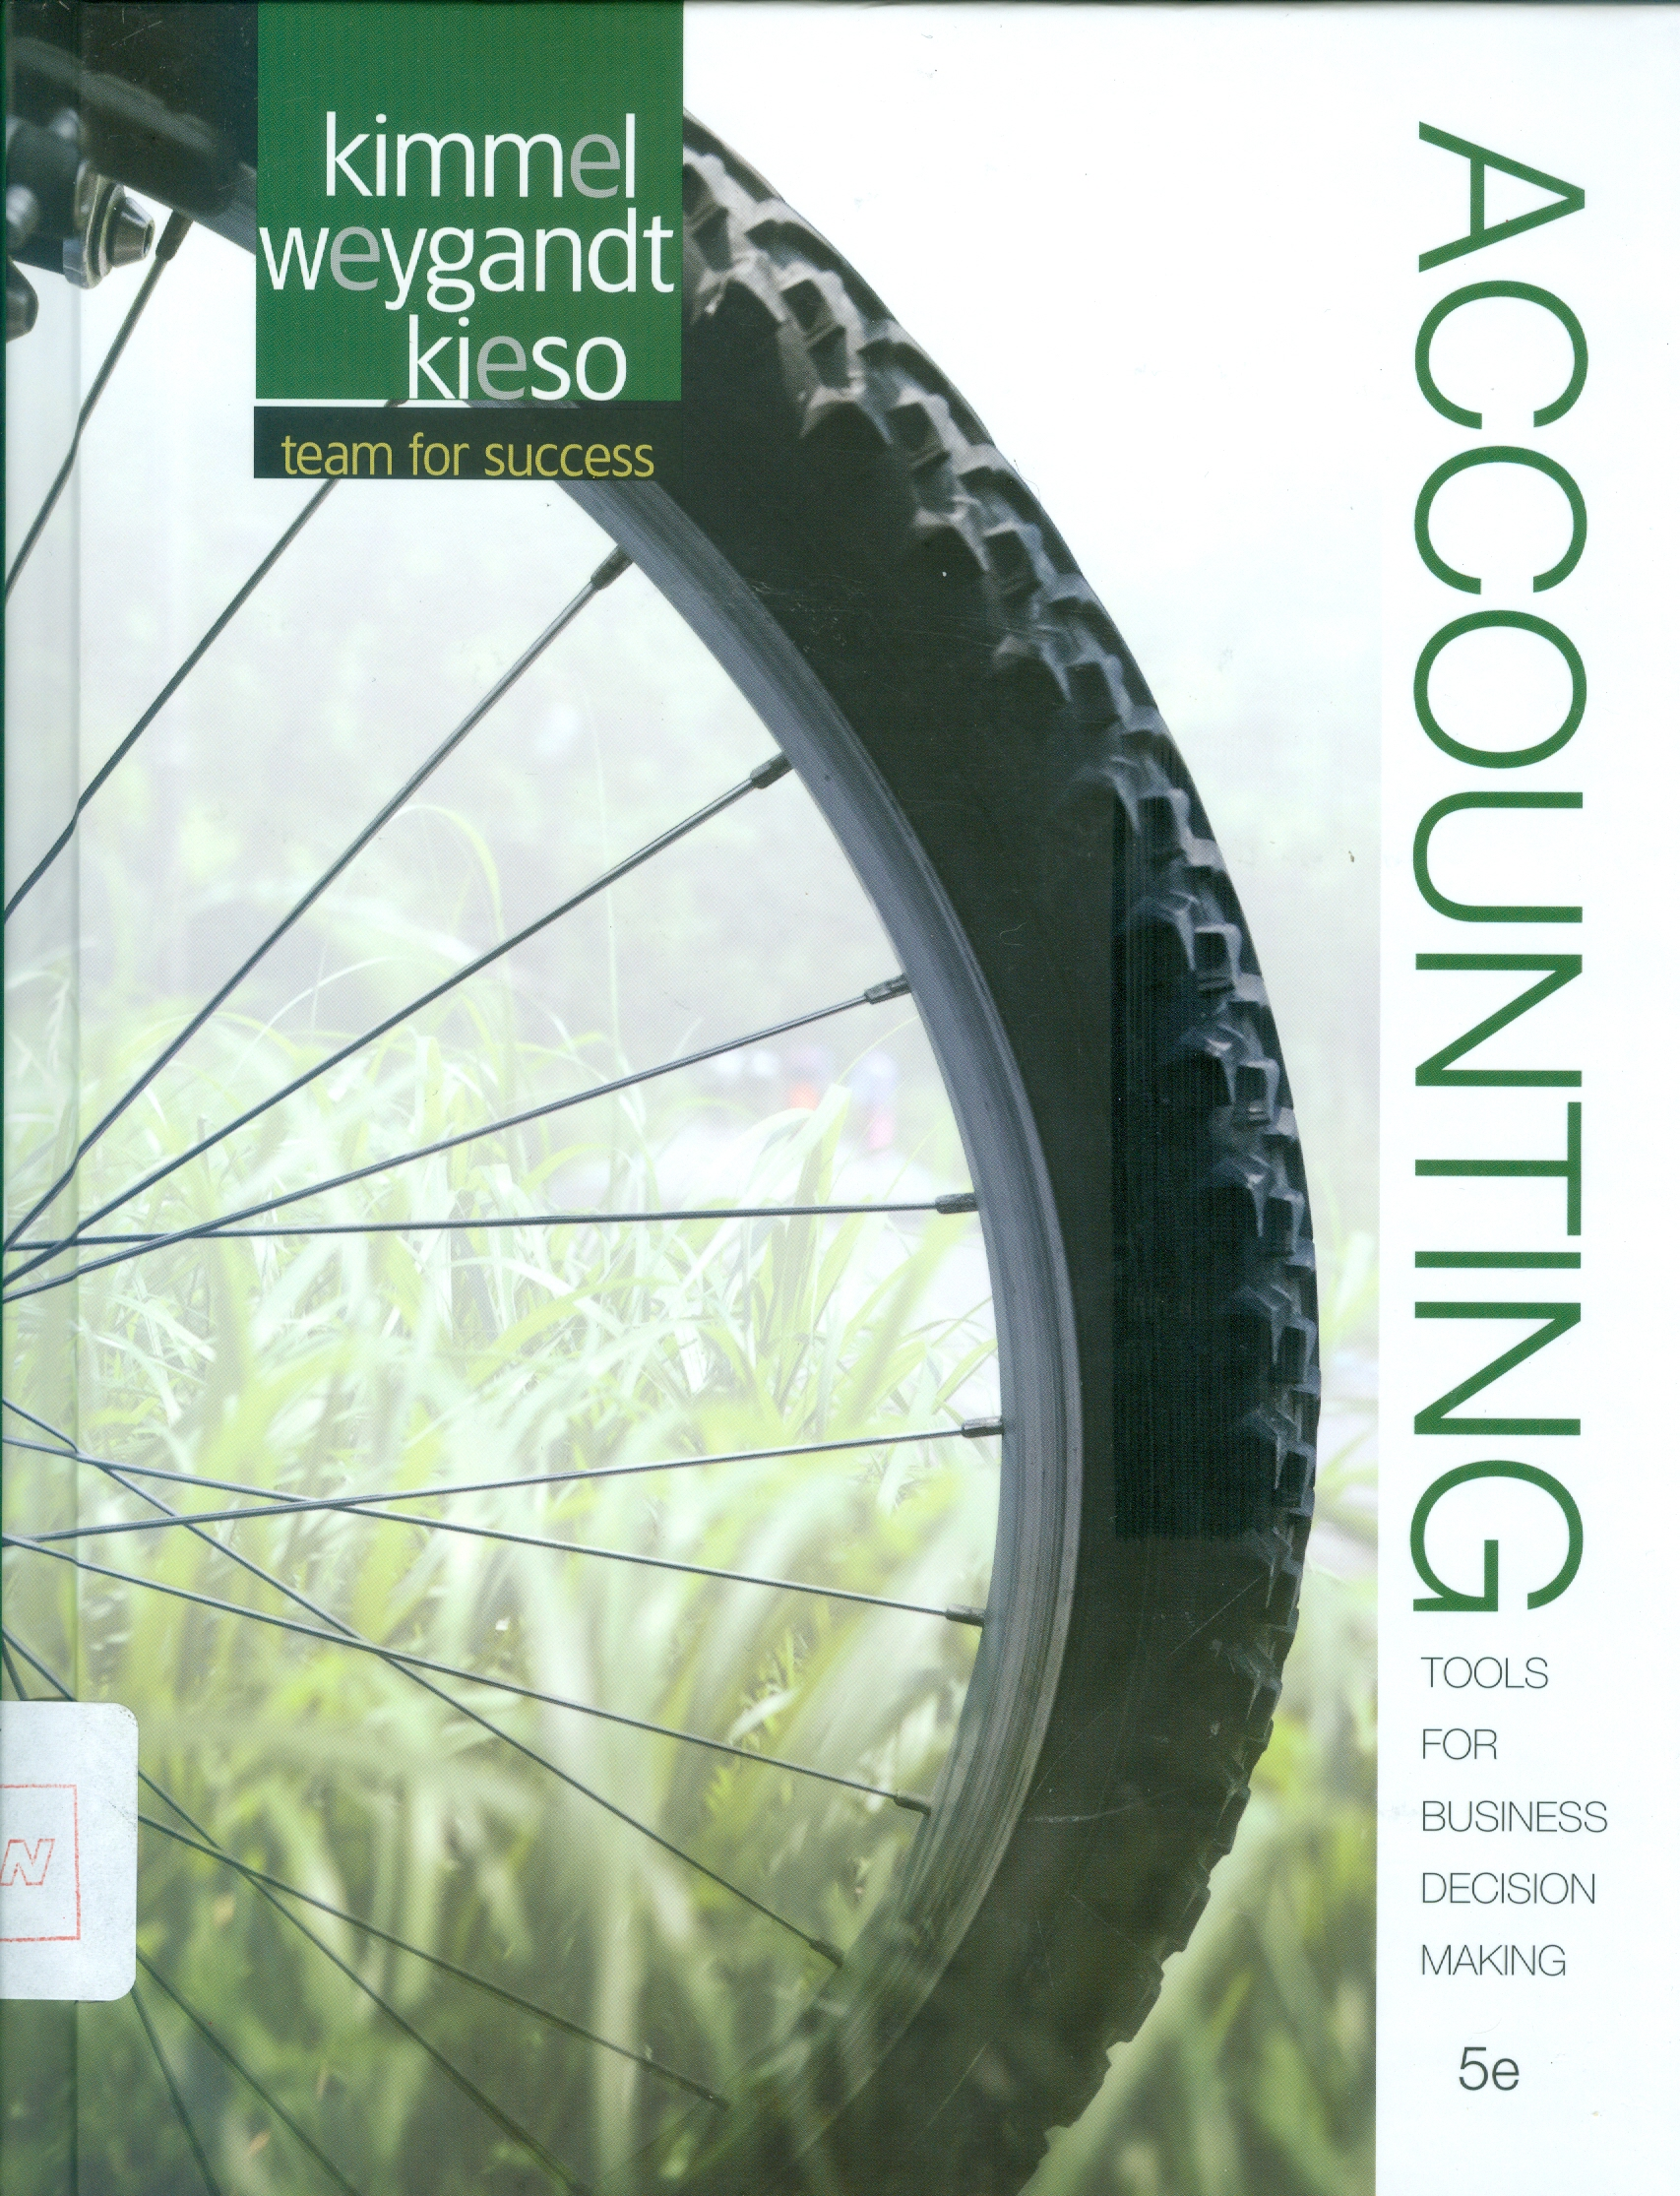 Accounting Tools for Business Decision Making0001.jpg